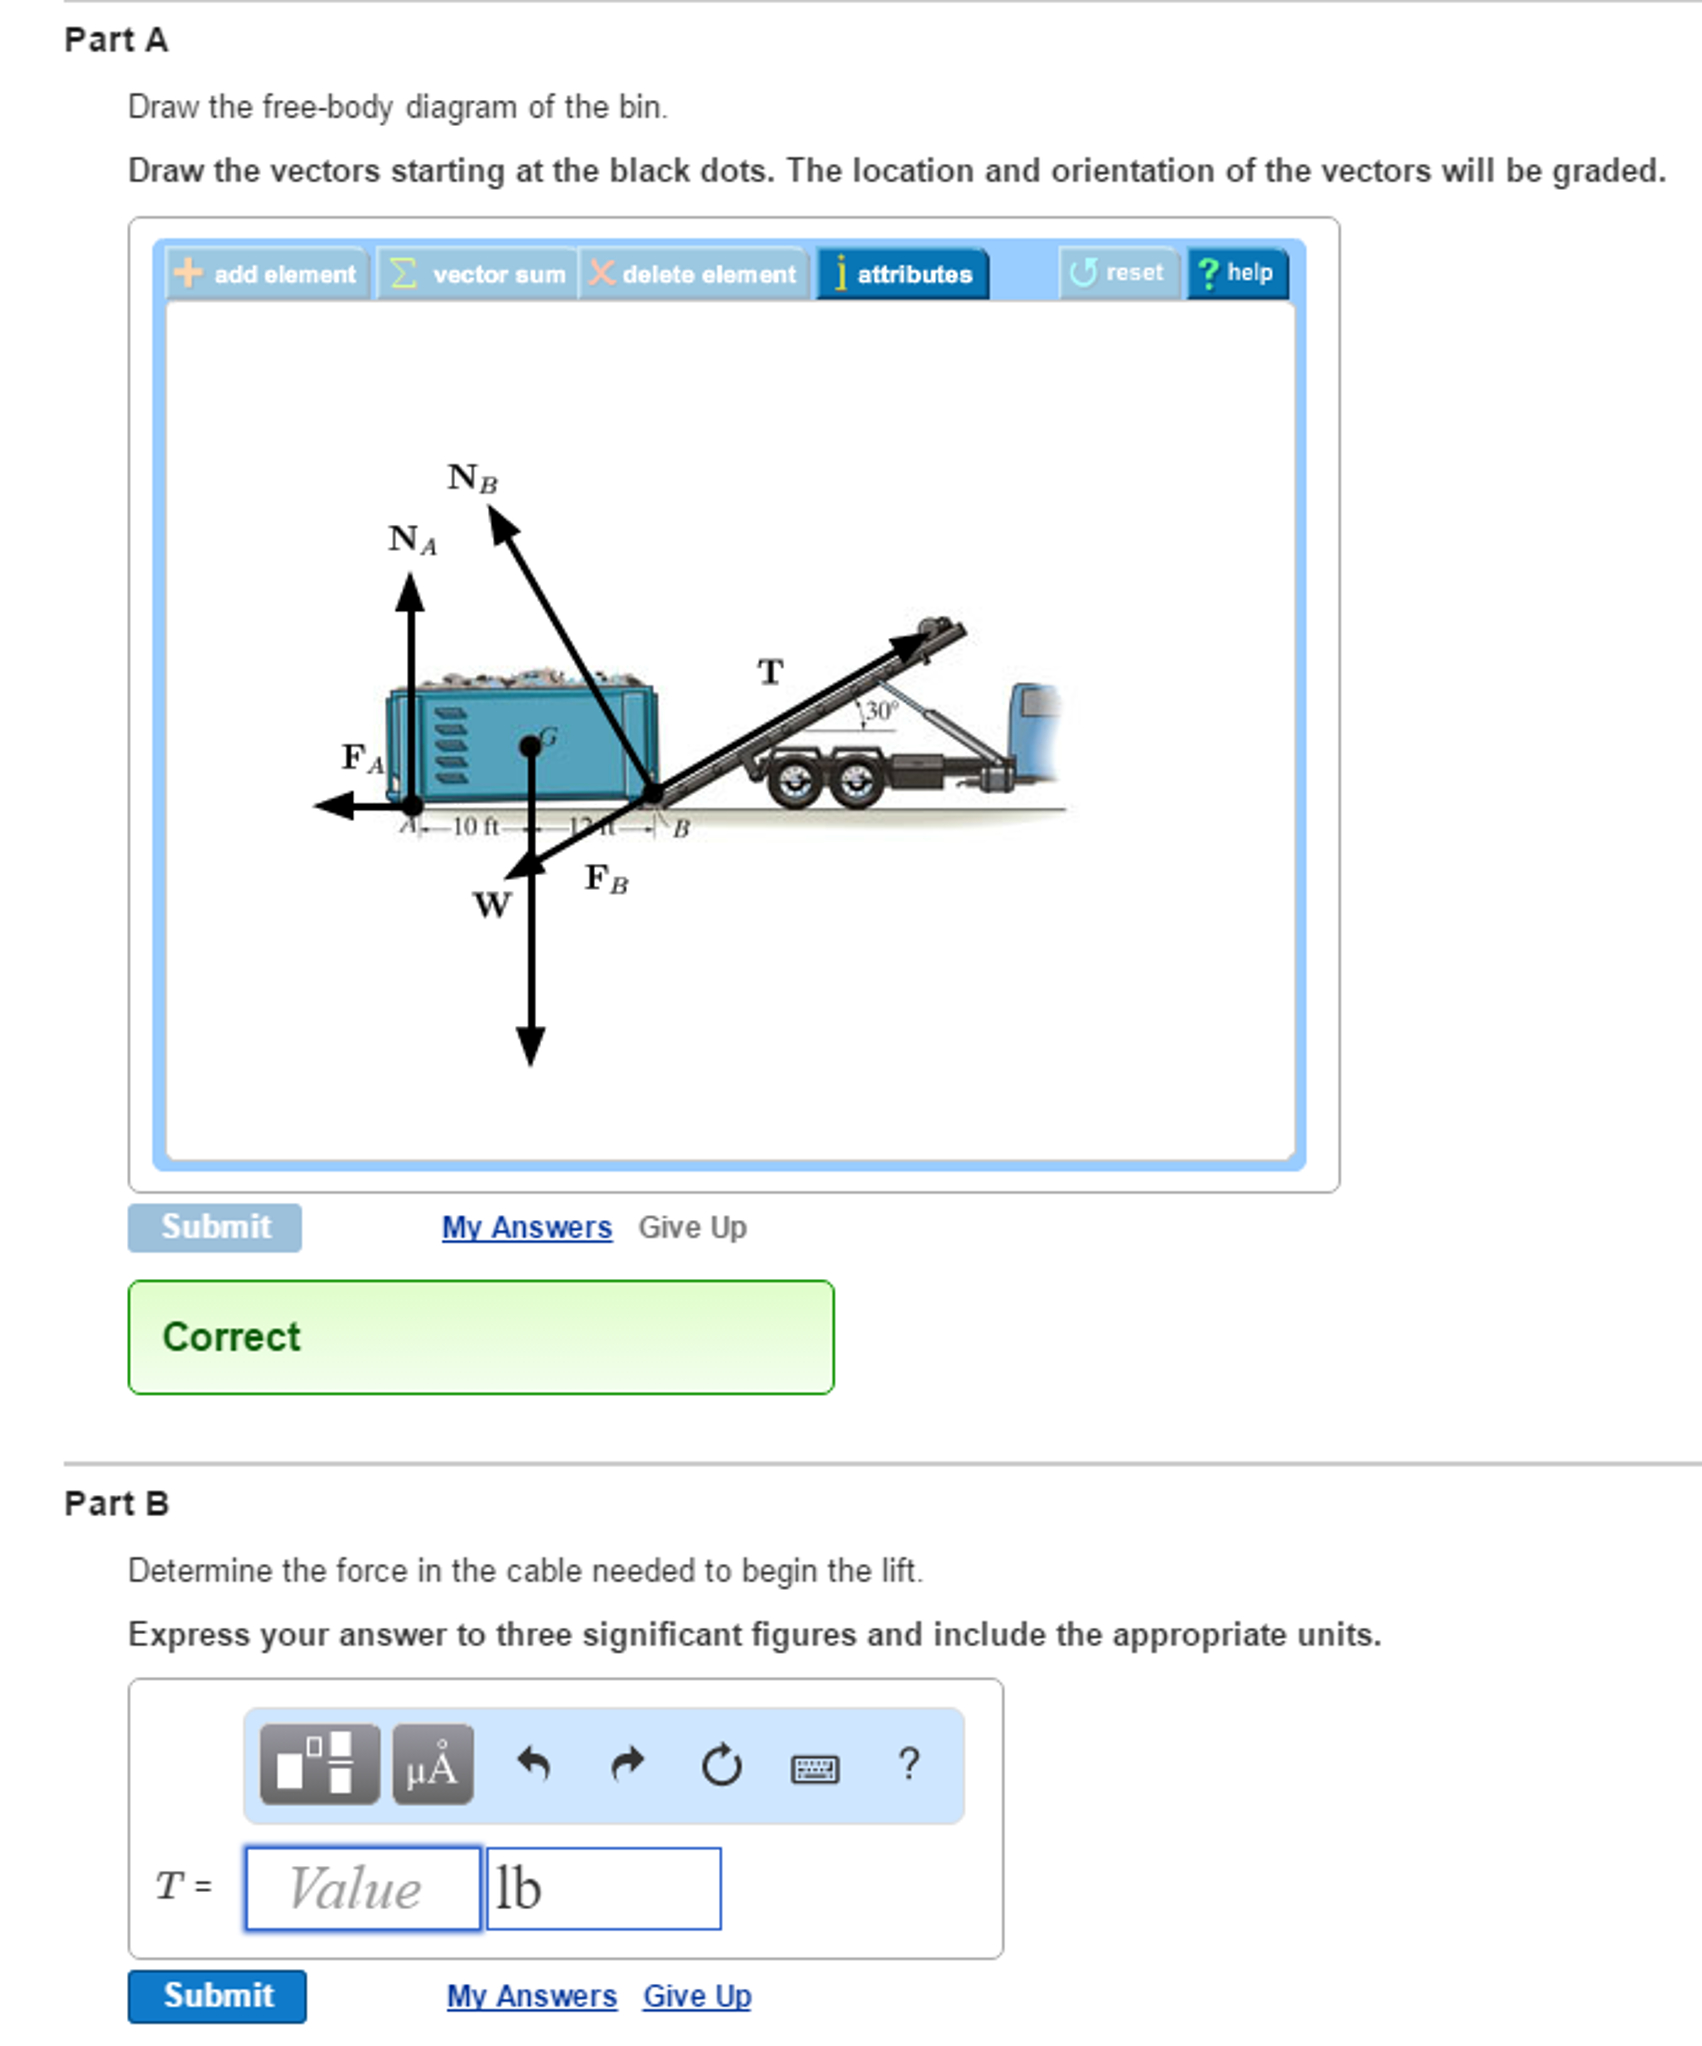 Free Body Diagram Solved Draw The Free Body Diagram Of The Bin Draw The Ve